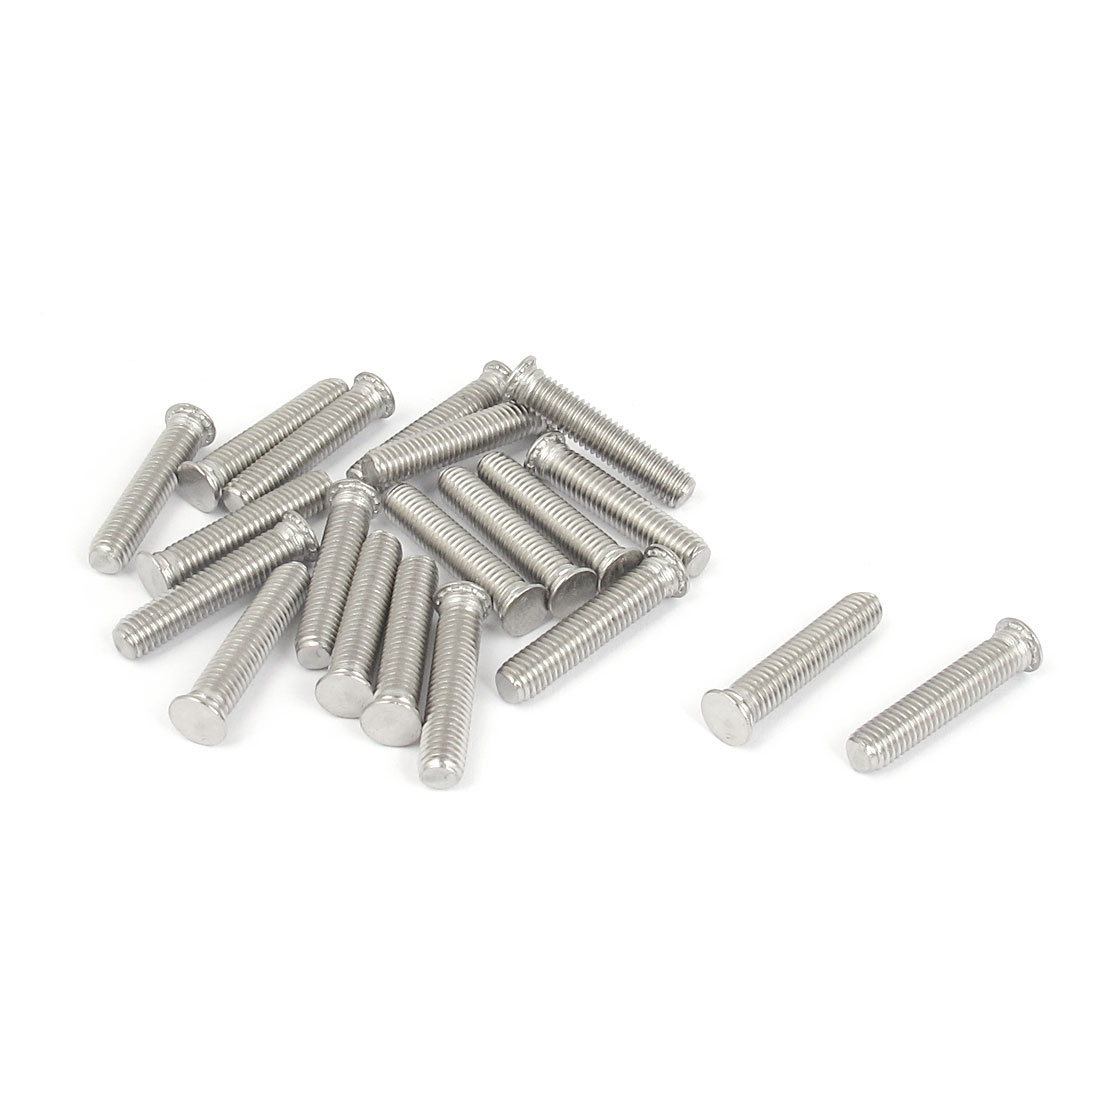 M5x25mm Flush Head Stainless Steel Self Clinching Threaded Studs Fastener 20pcs